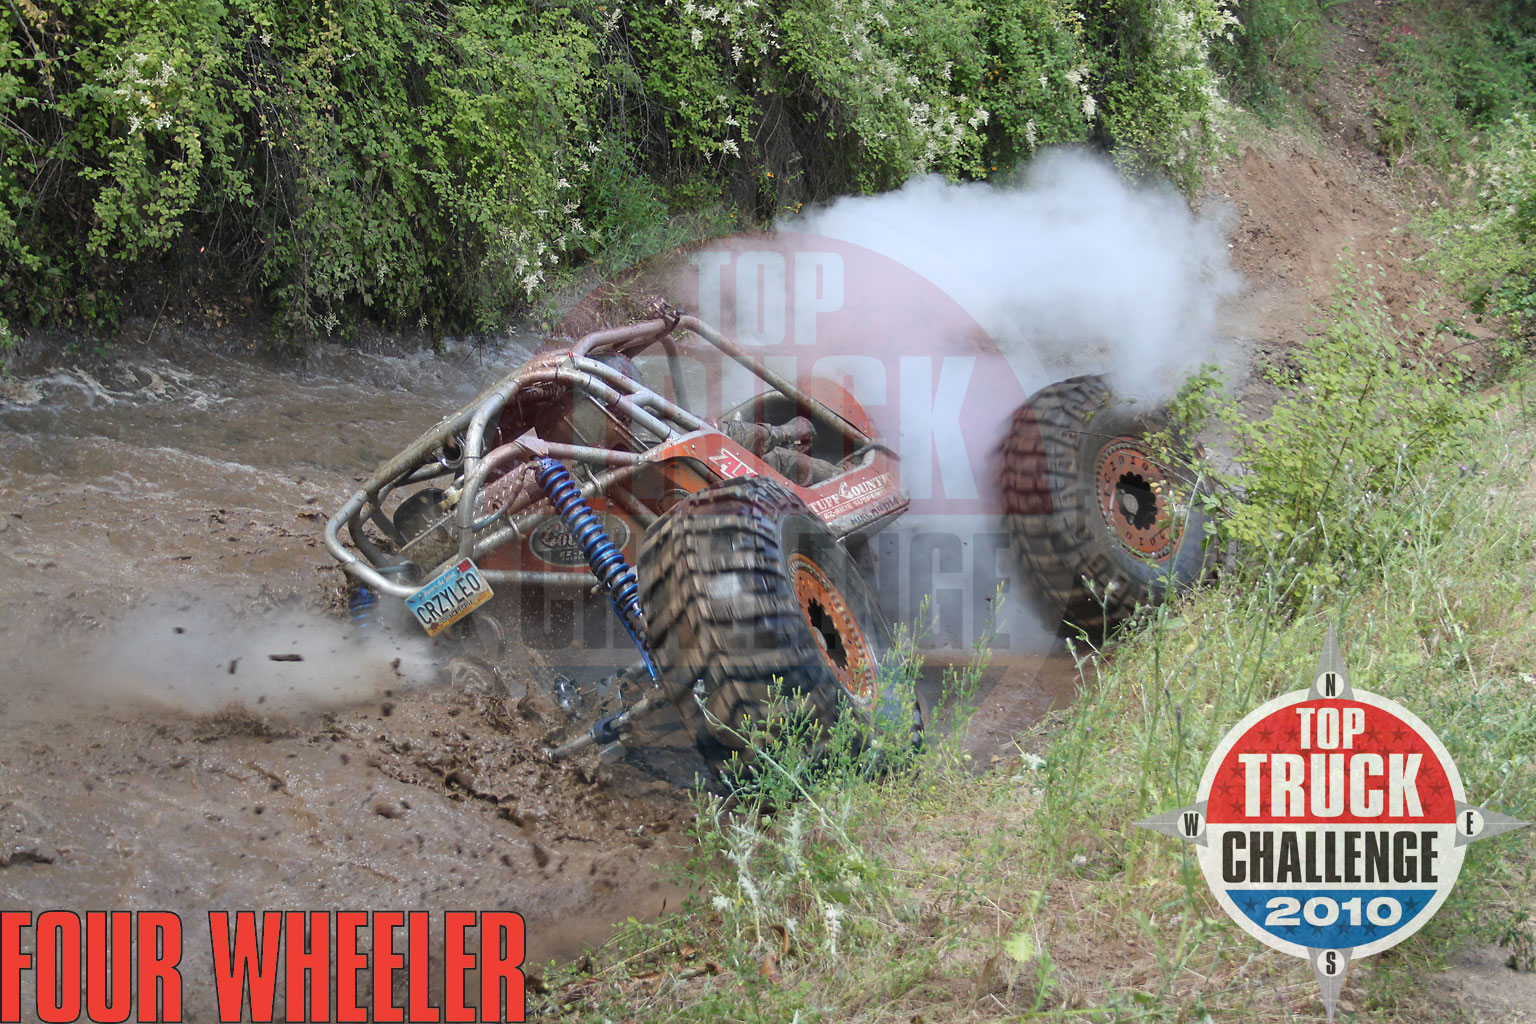 2010 Top Truck Challenge Tank Trap Leo Kuether 2007 Cole Works Fat Girl Buggy